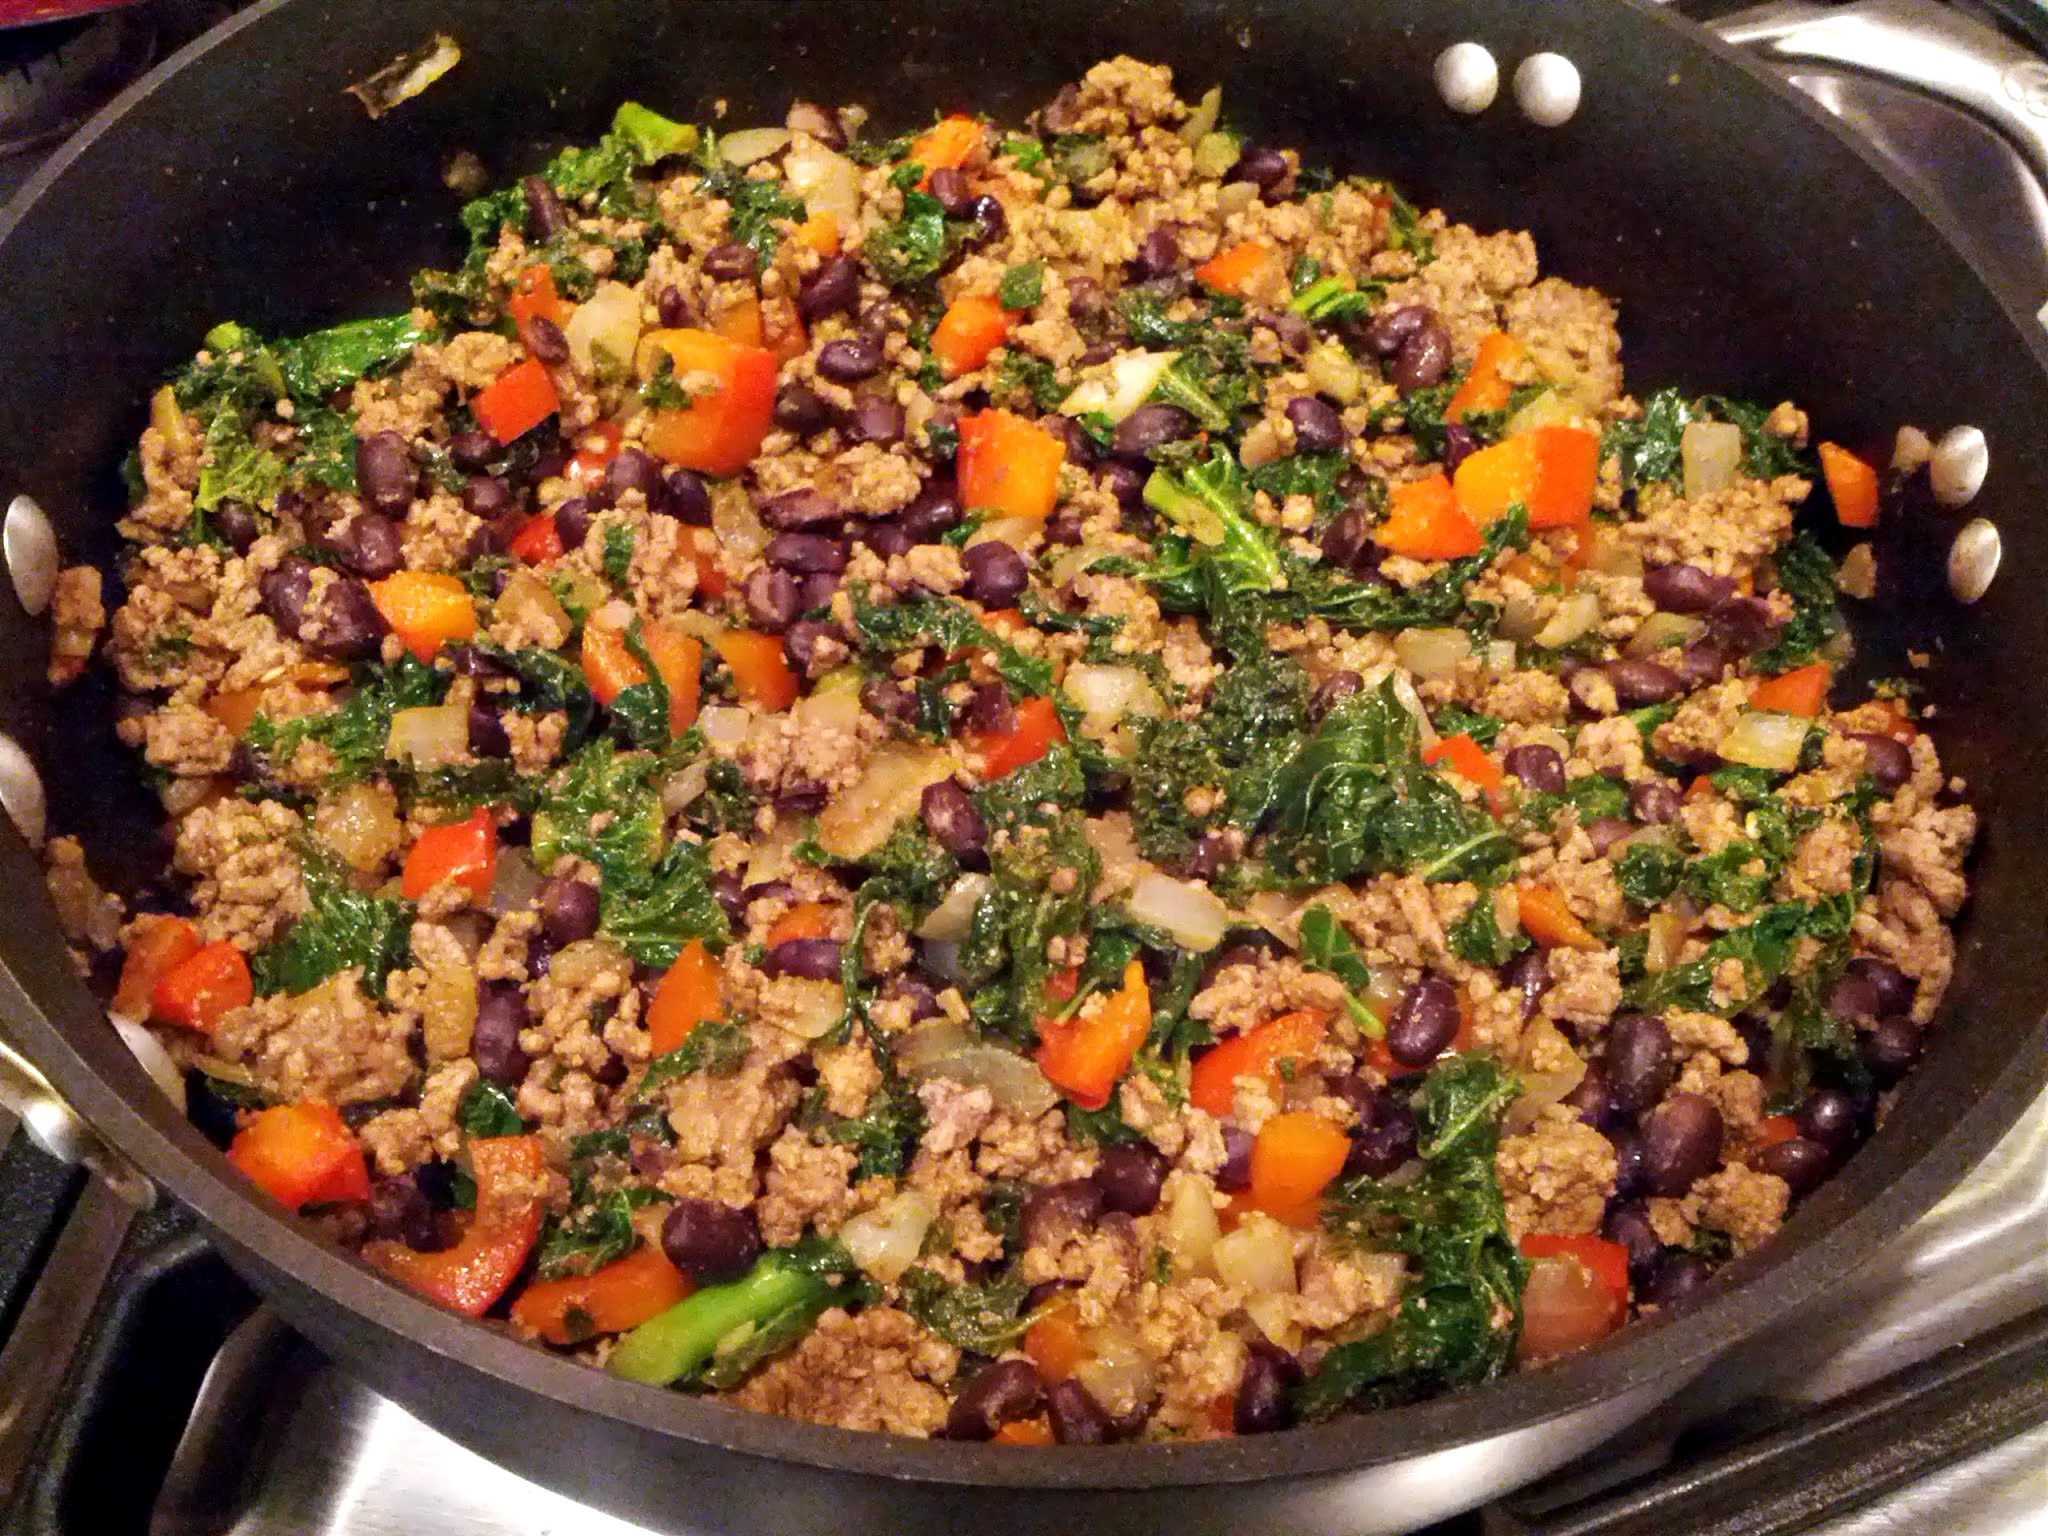 Healthy Dishes With Ground Turkey  Kale and Ground Beef Turkey Taco Filling